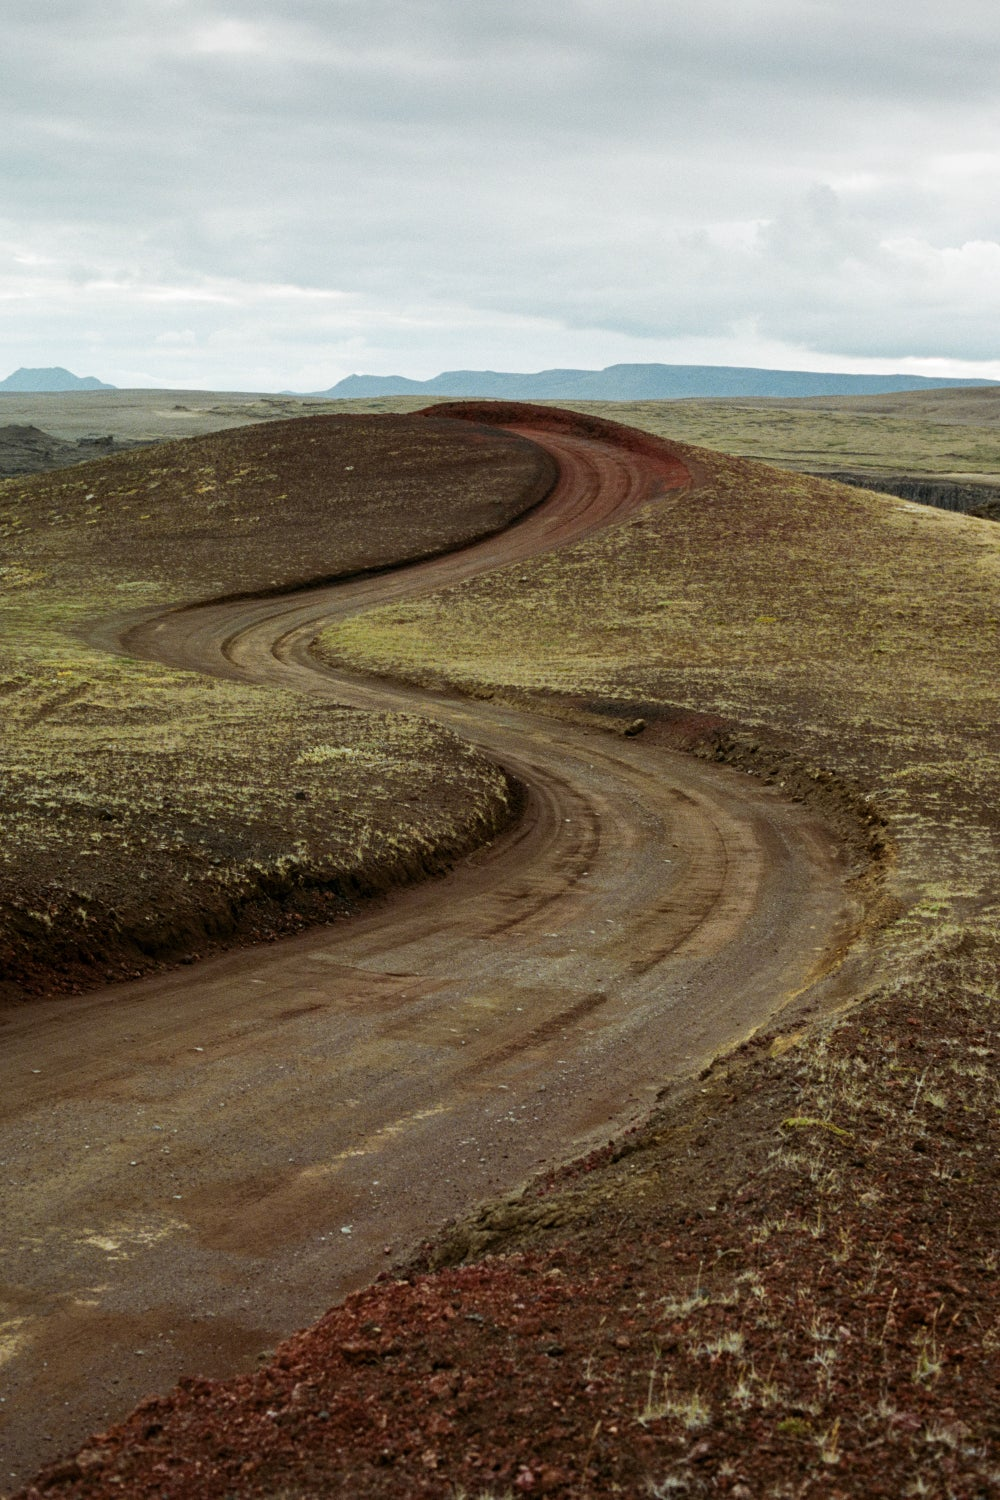 Image of icelandic road